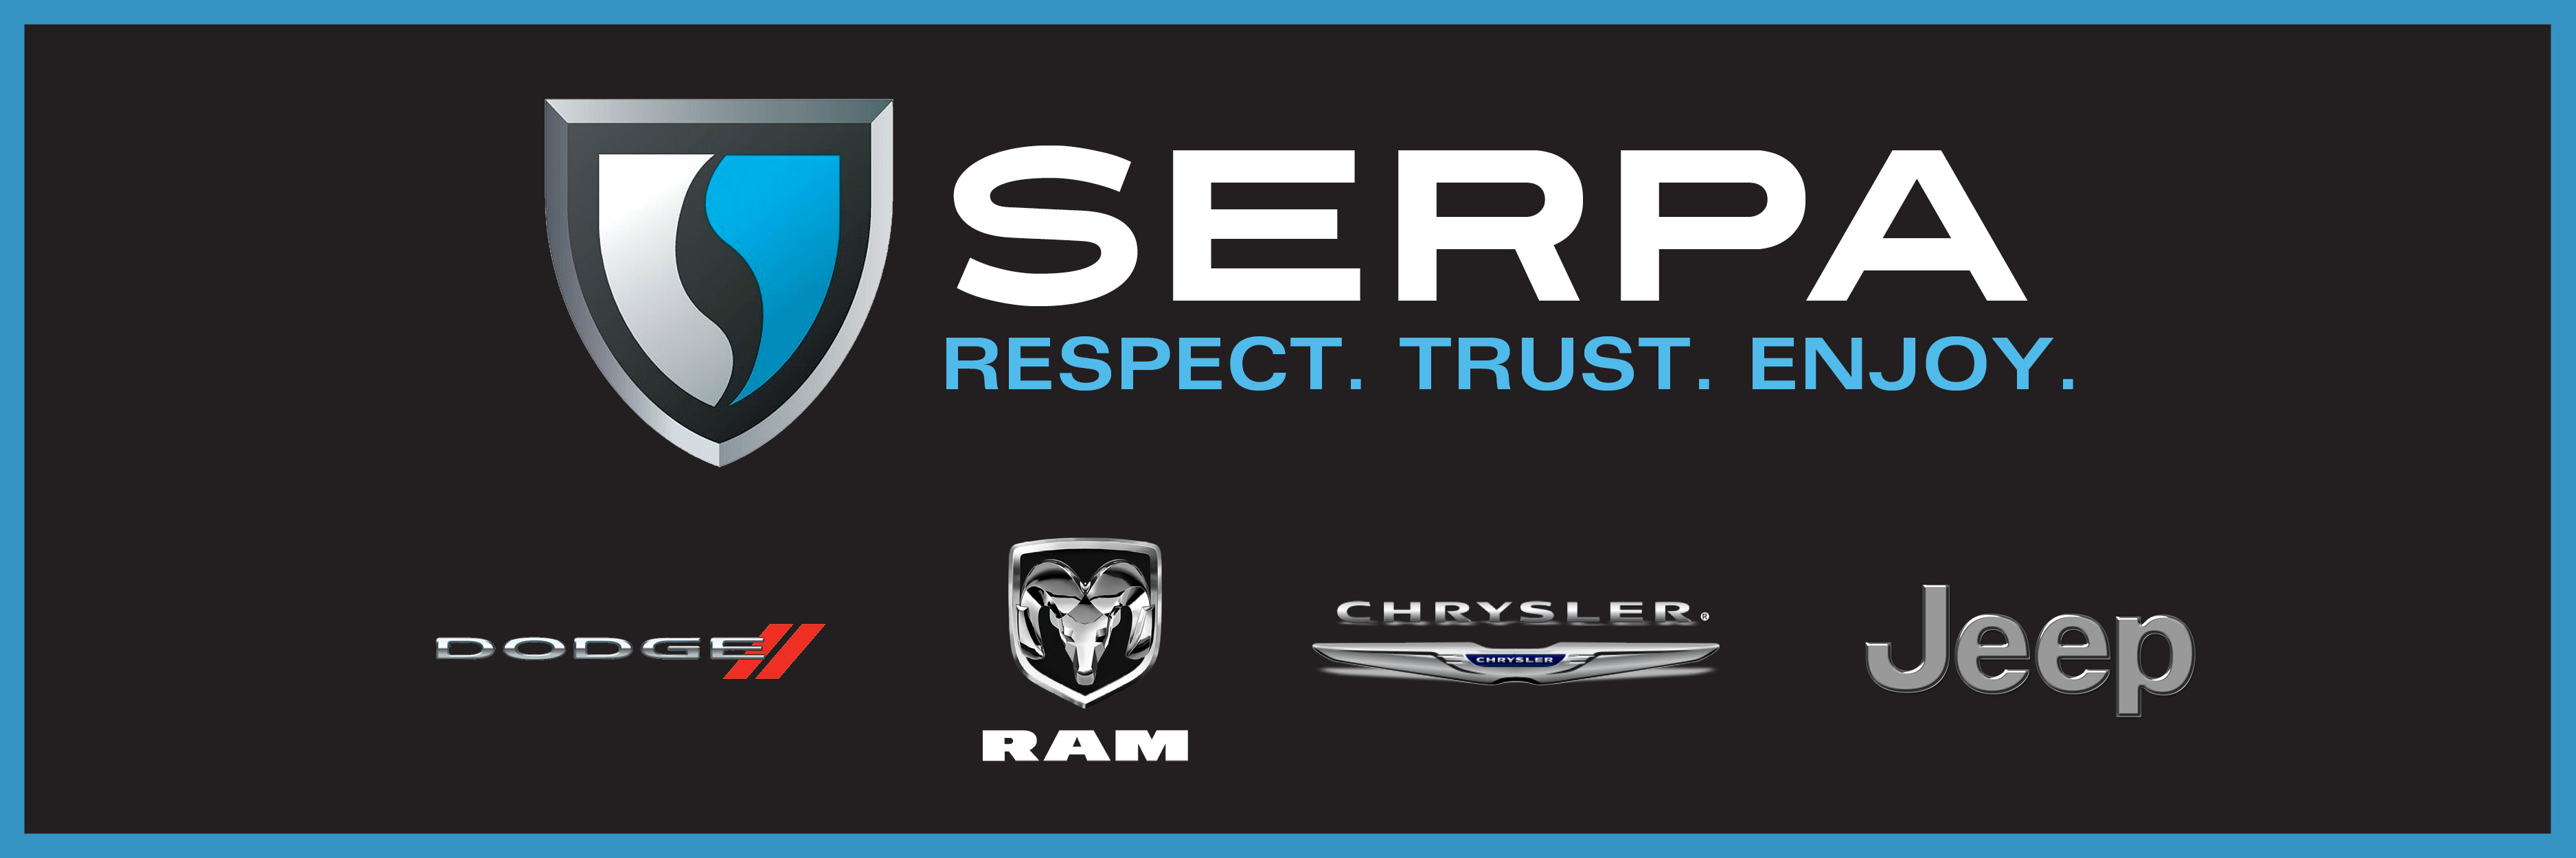 Serpa Chrysler